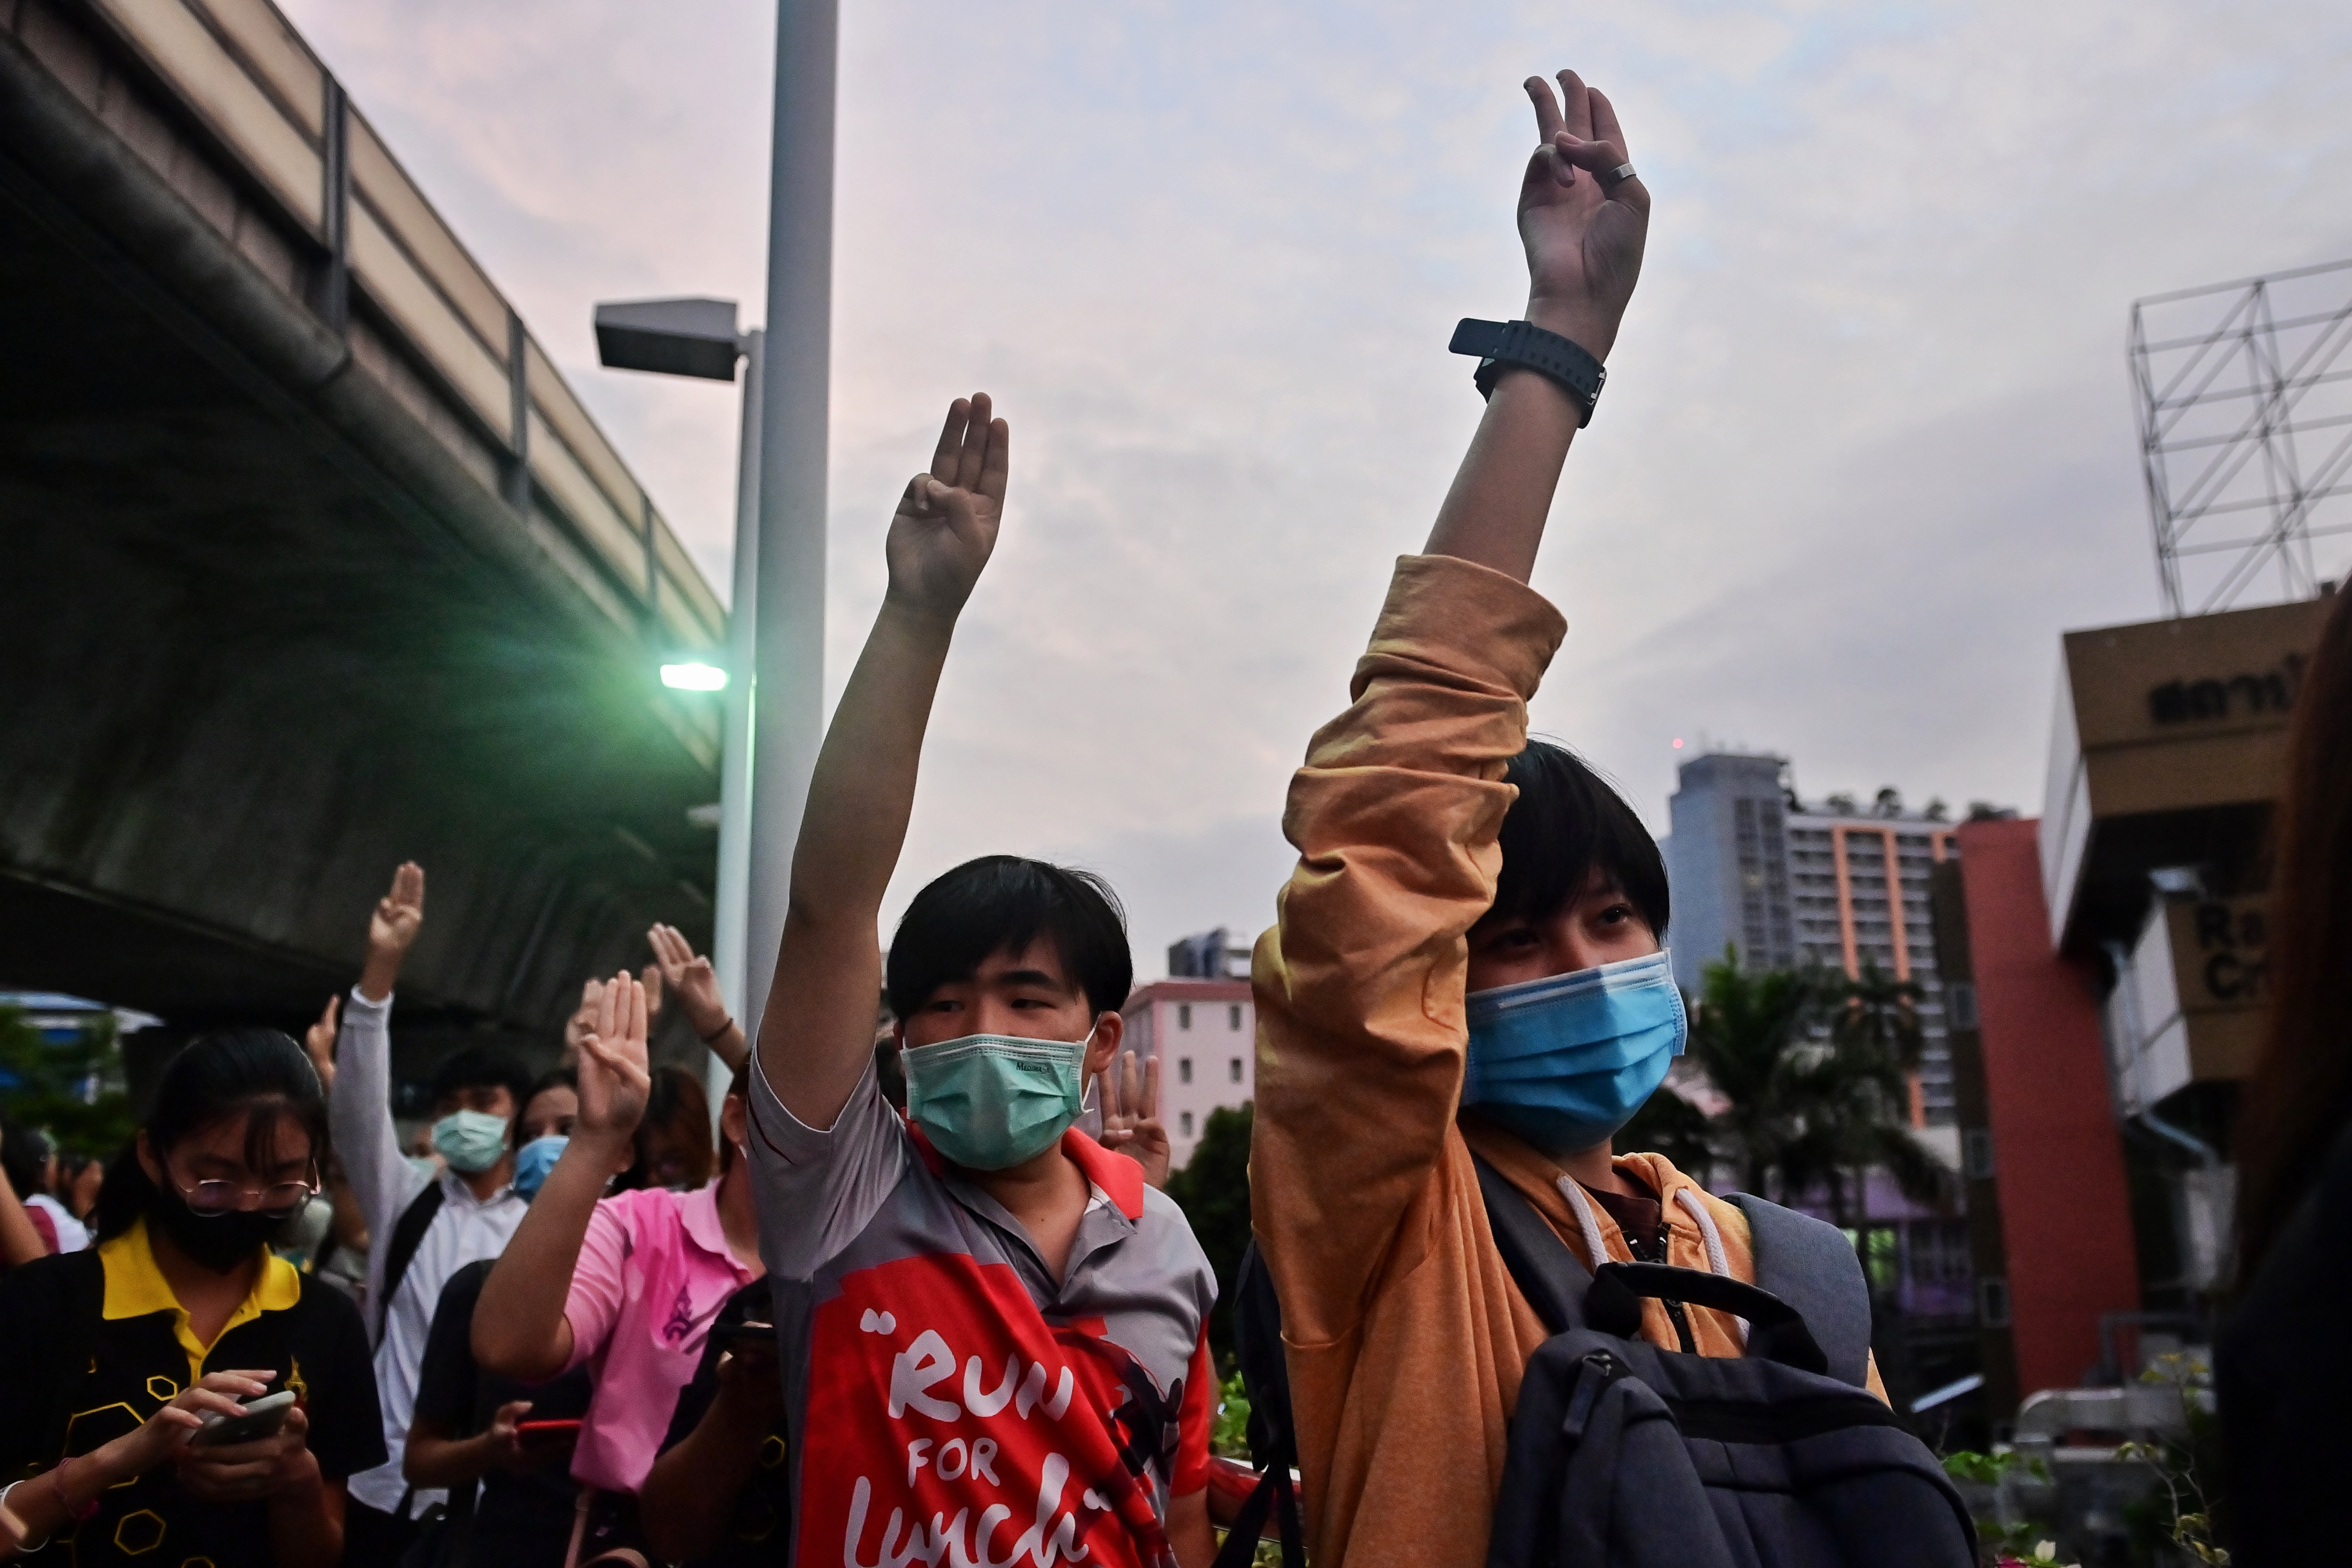 Thai cabinet agrees special parliament session amid protests, media says